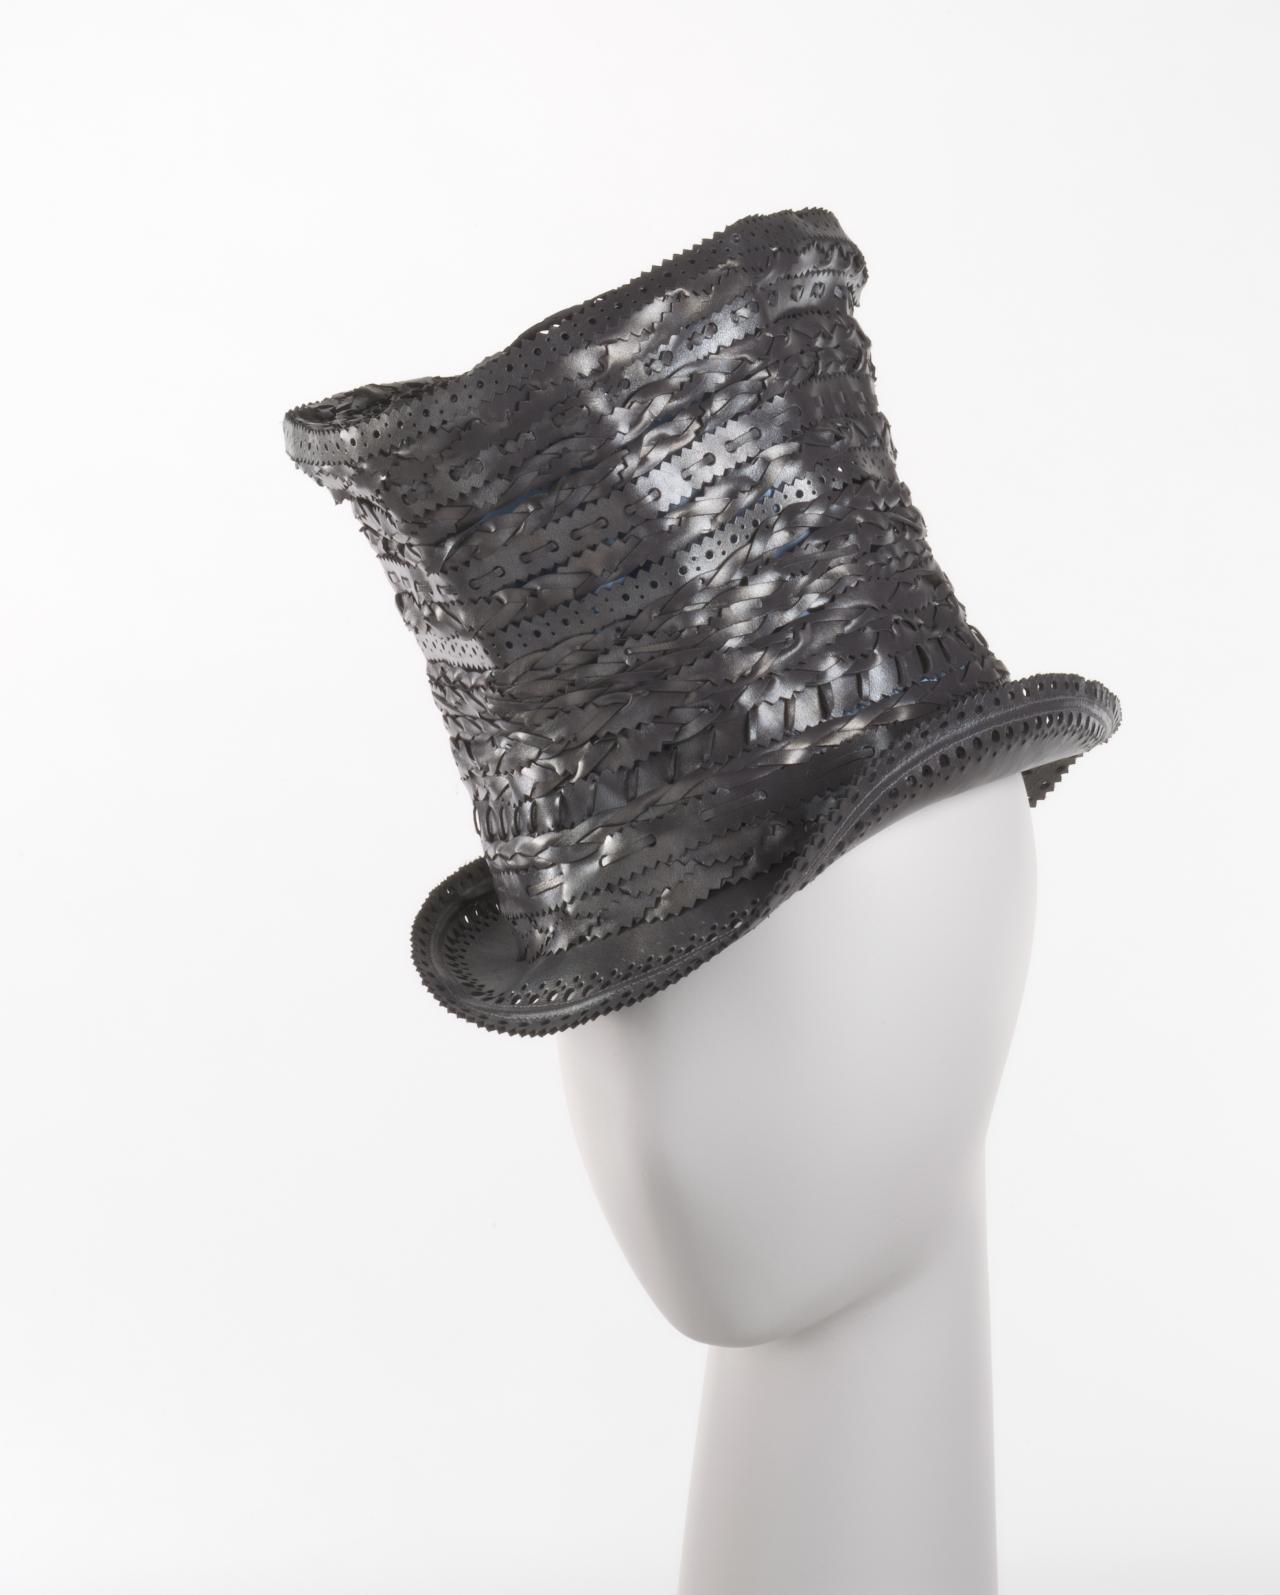 Tooled leather top hat